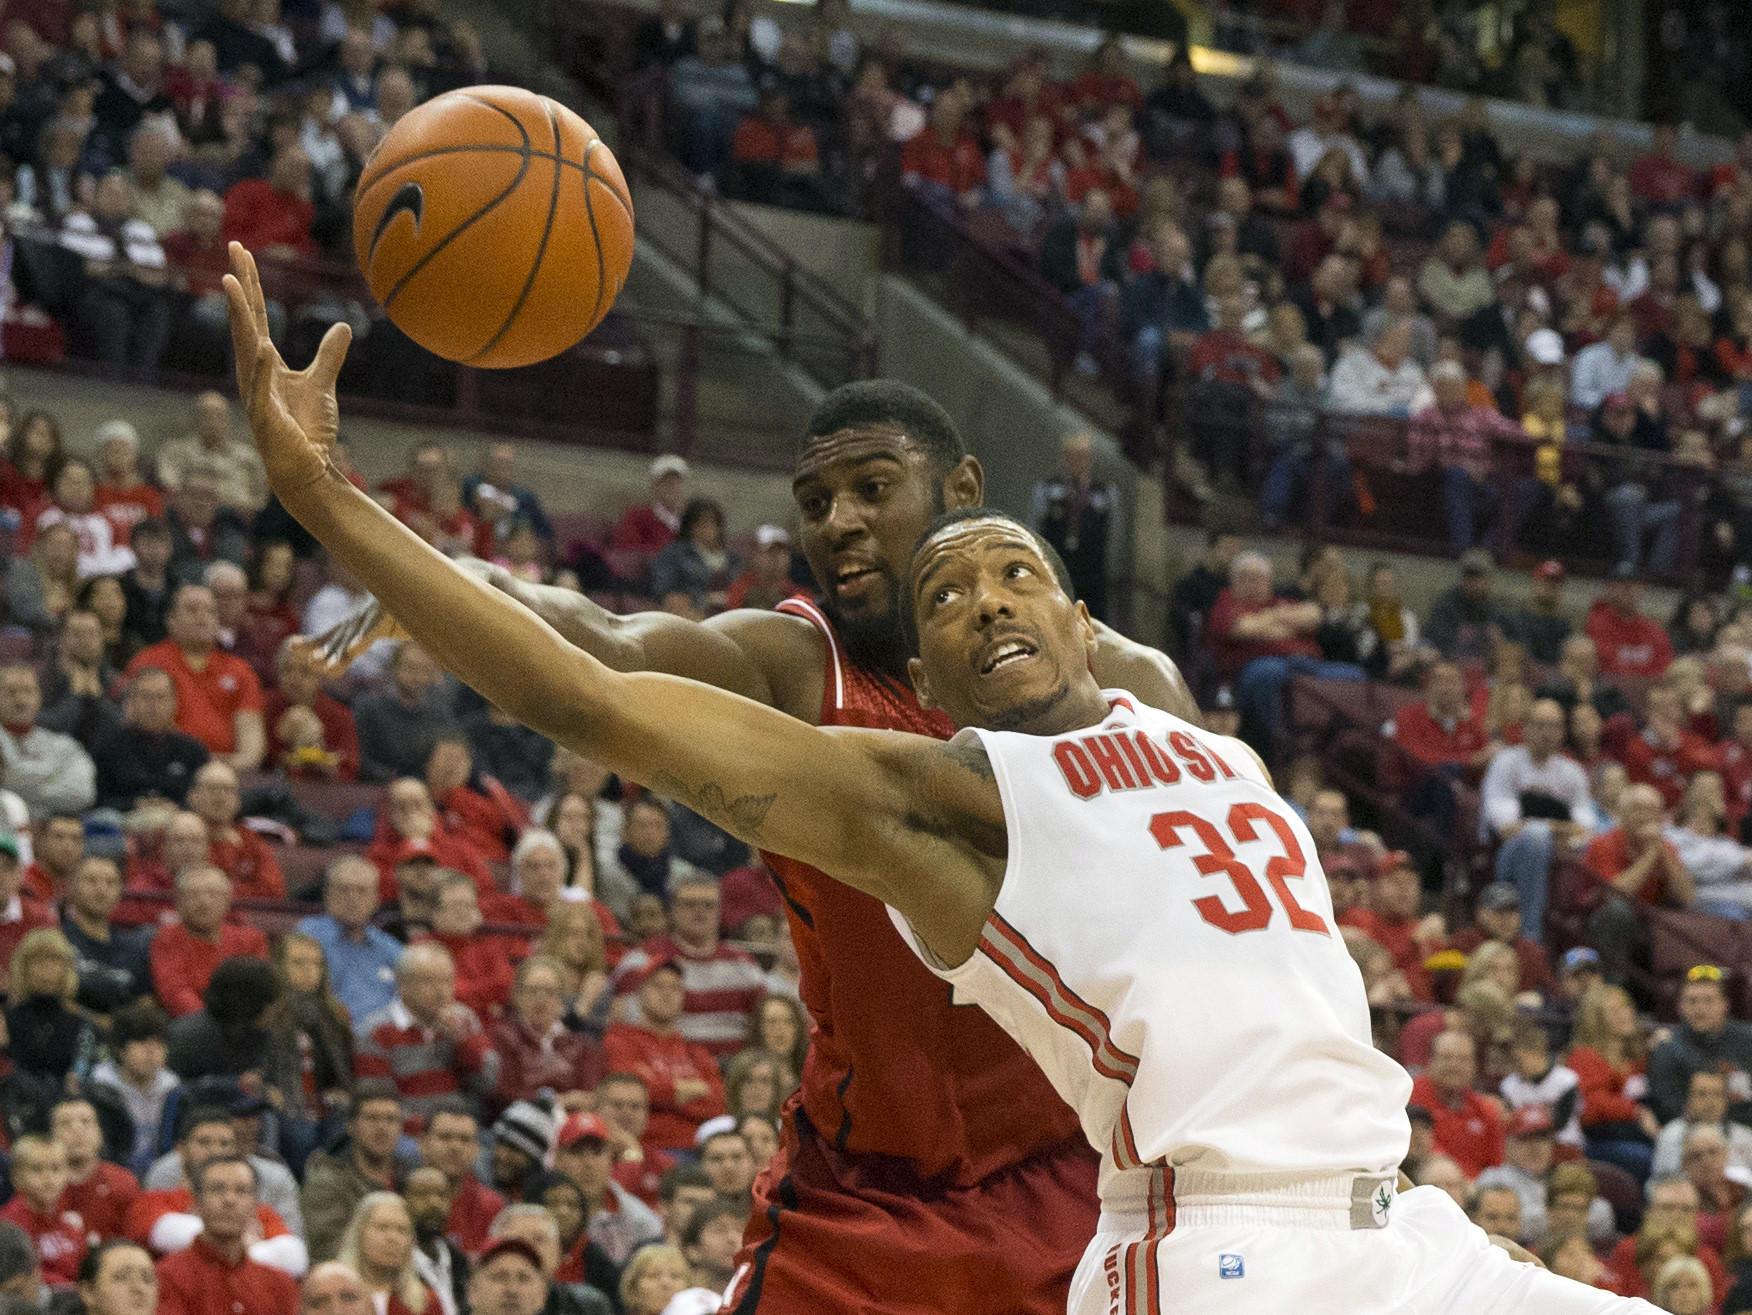 Ohio State Buckeyes guard Lenzelle Smith Jr. (32) beats Nebraska Cornhuskers forward Leslee Smith (21) to a rebound.